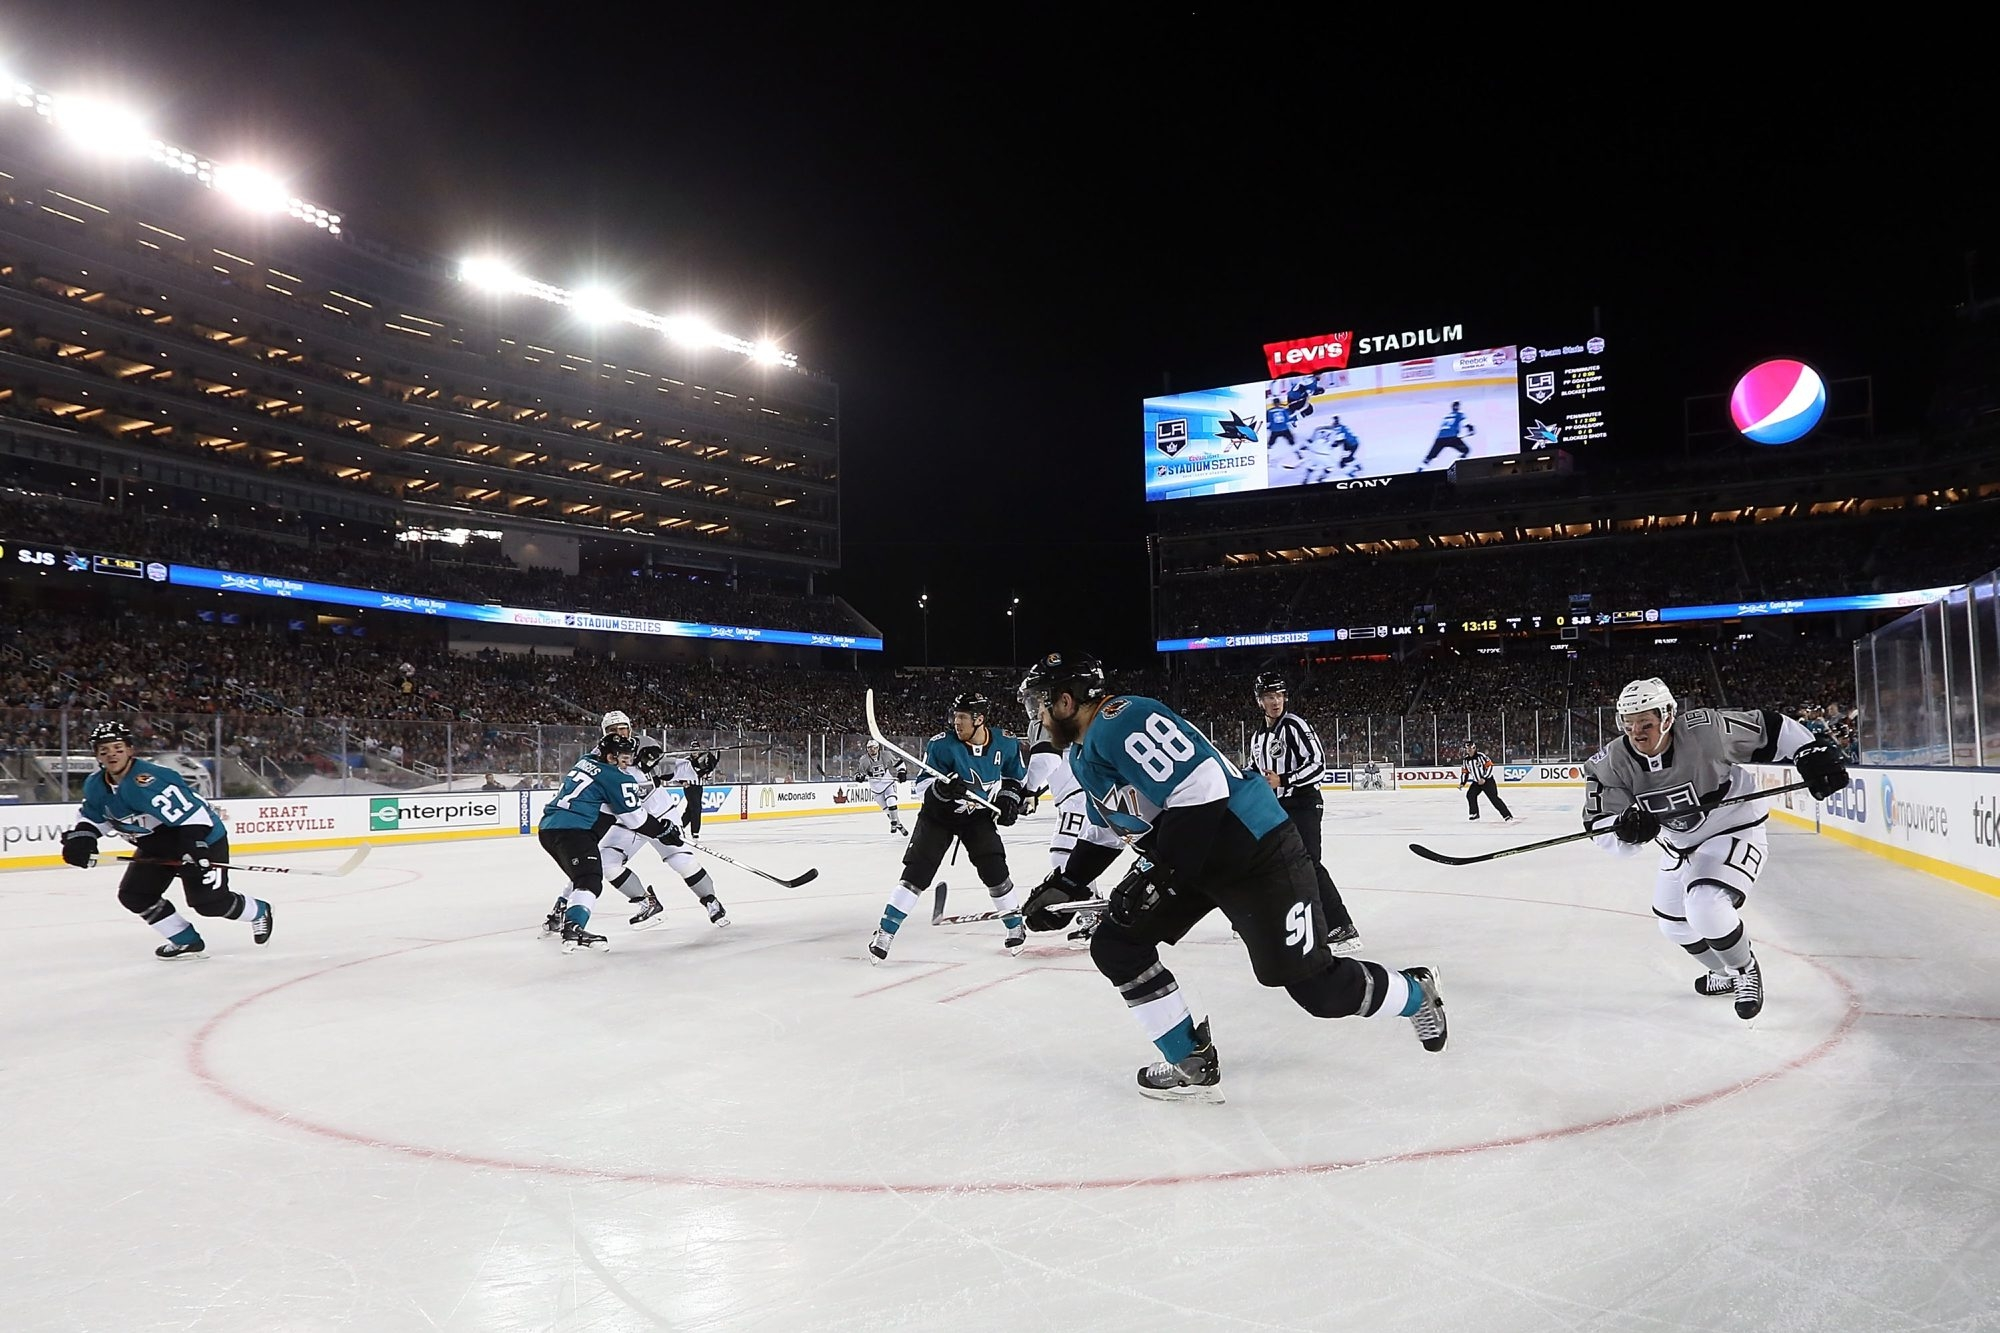 Stadium Series games like this one last season between the Los Angeles Kings and San Jose Sharks at Levi's Stadium in Santa Clara have been boosted by the efforts of John Collins, who is departing his position as the NHL's chief operating officer.